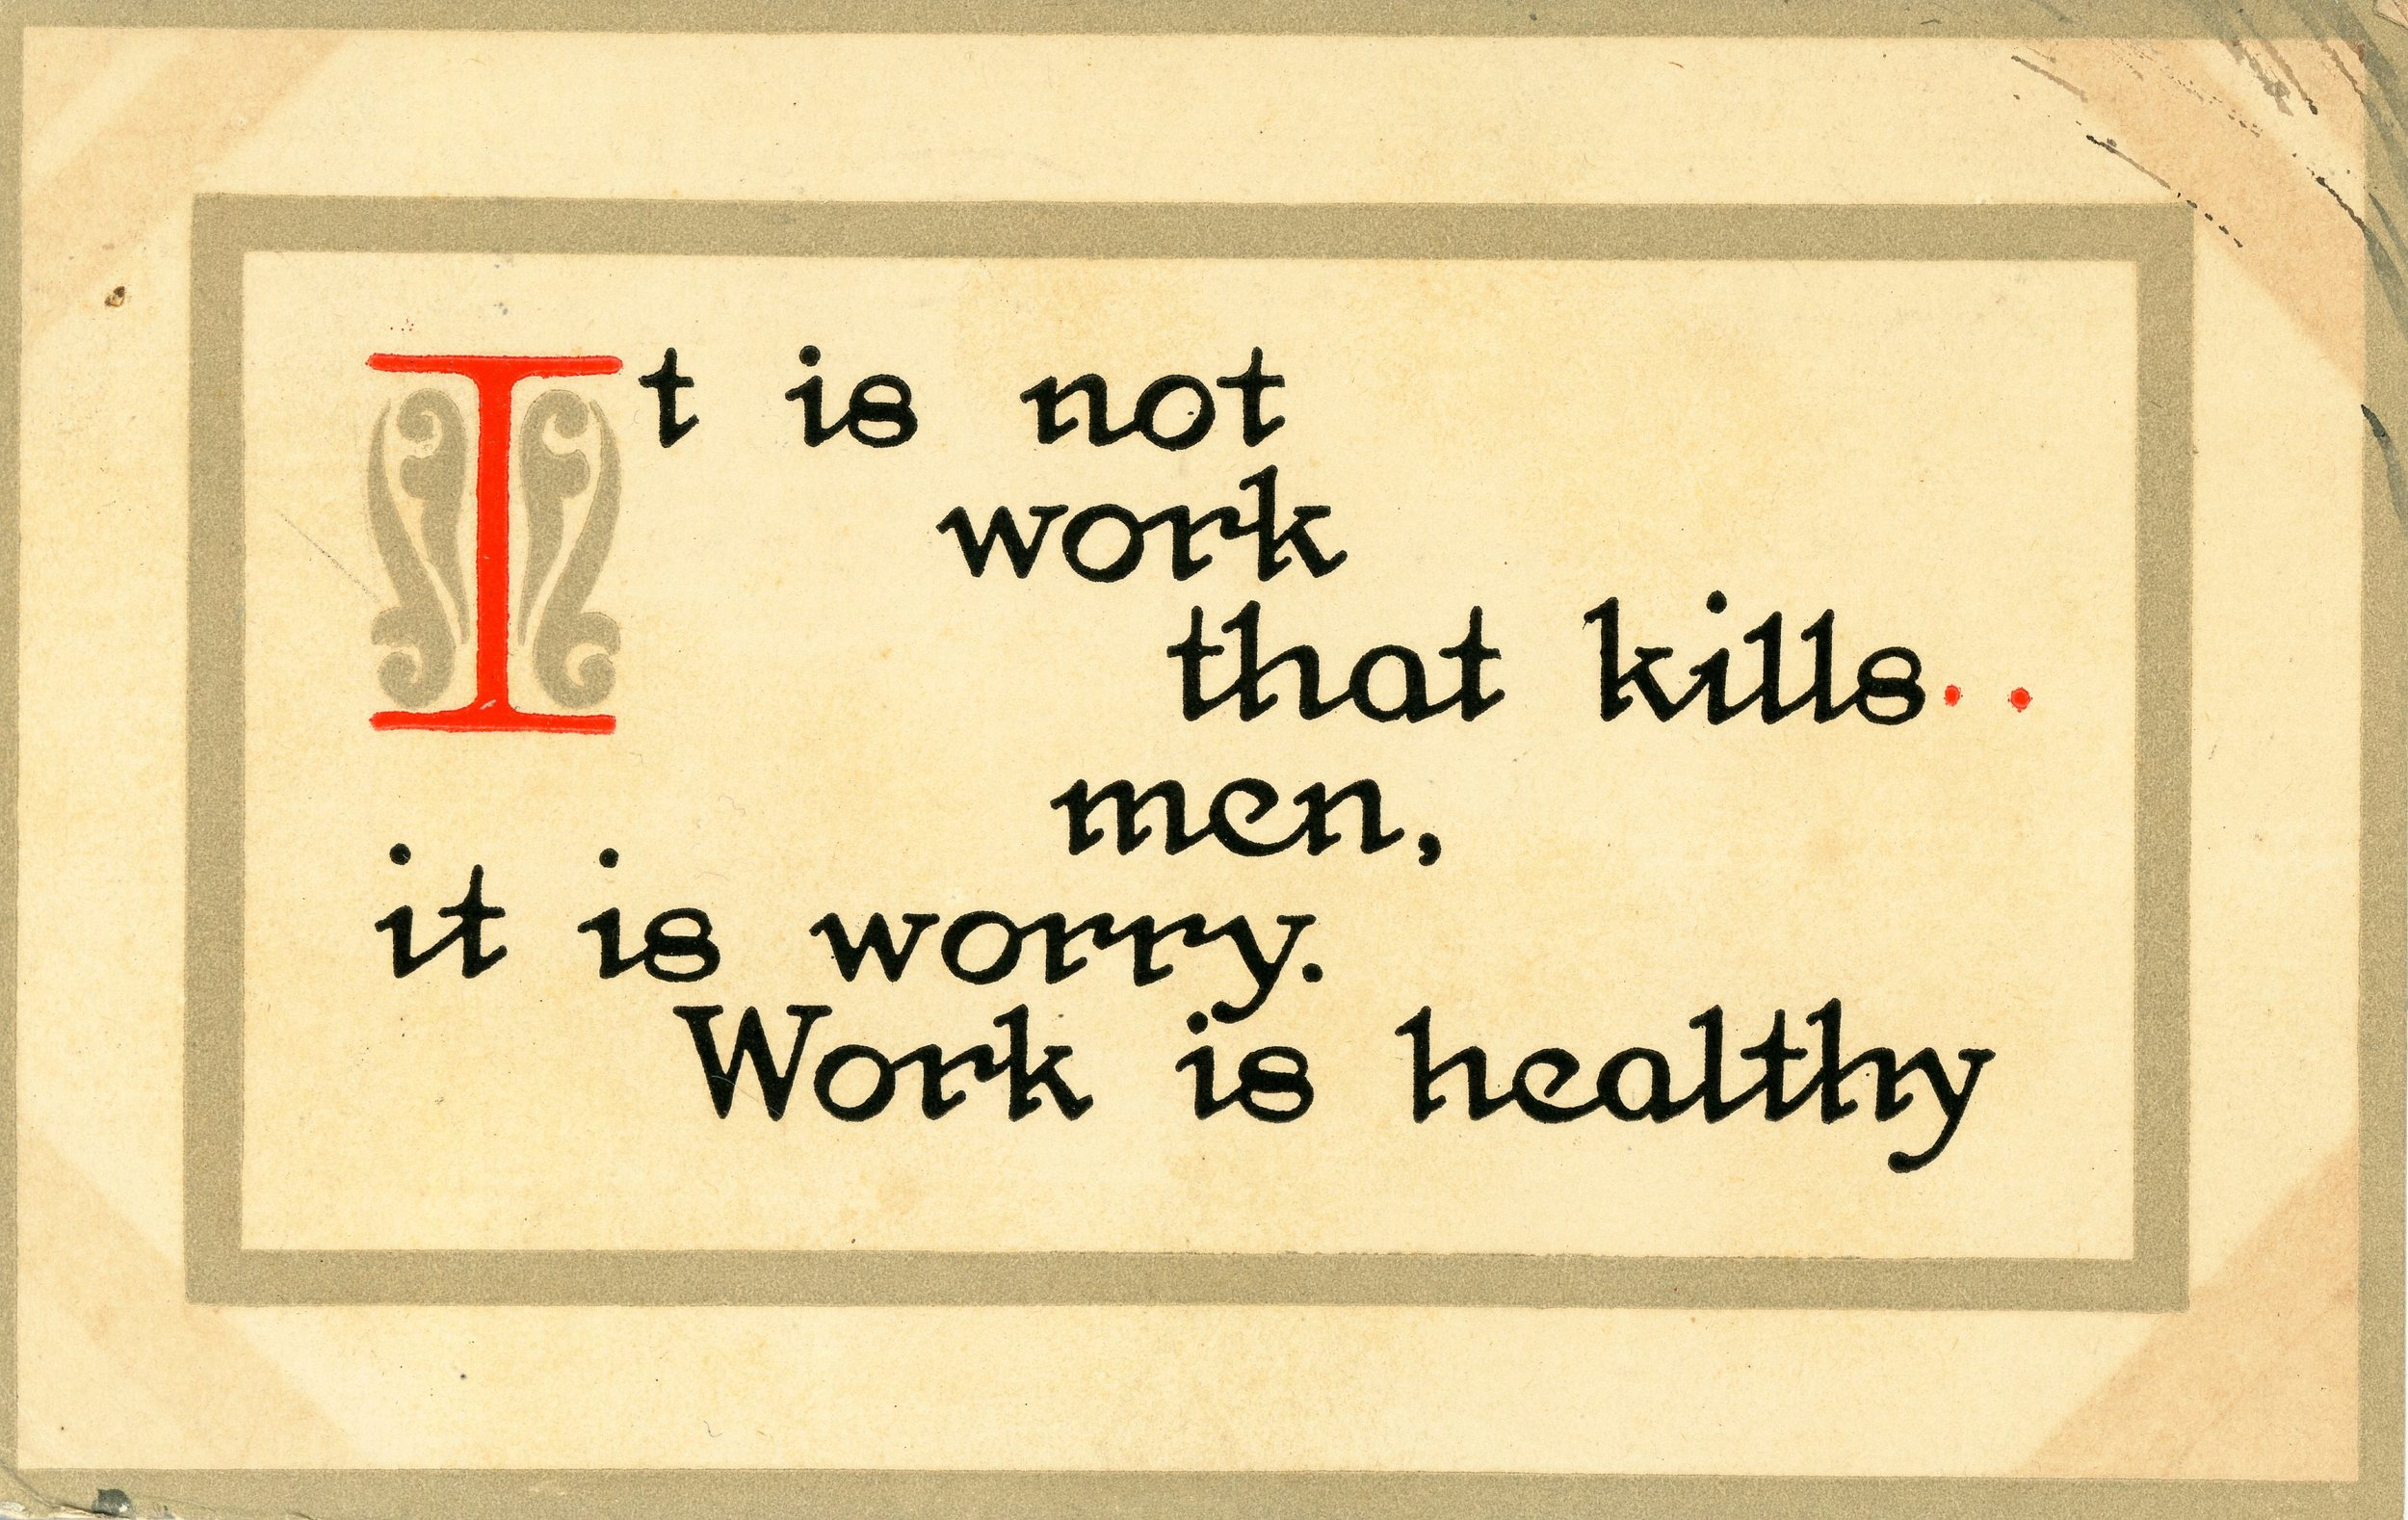 work_is_healthy